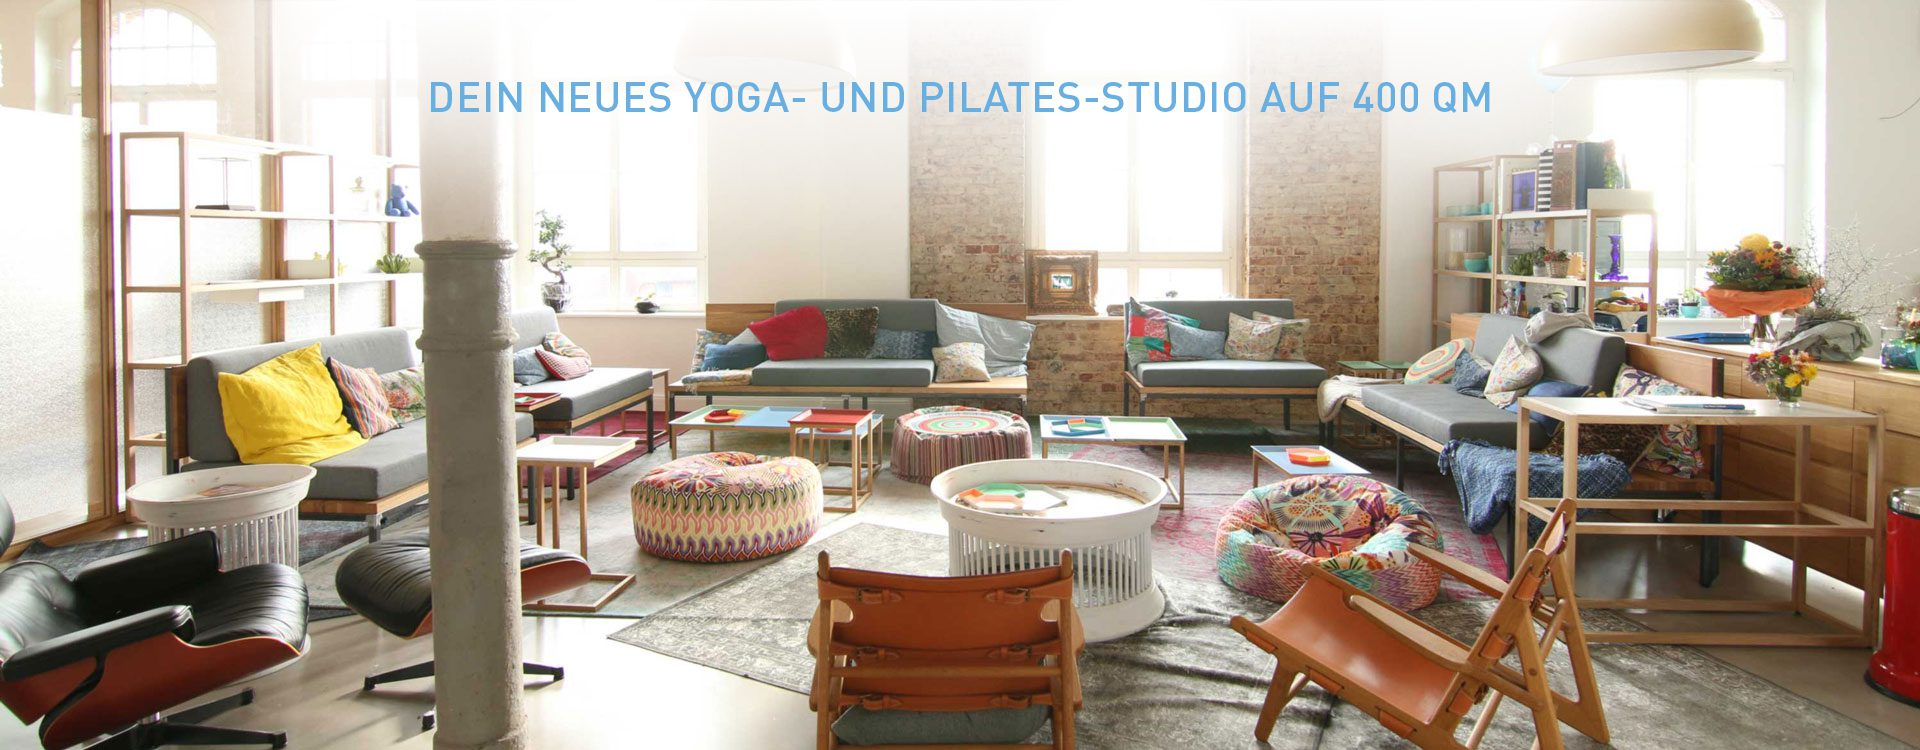 Yoga und Pilates in Fulda